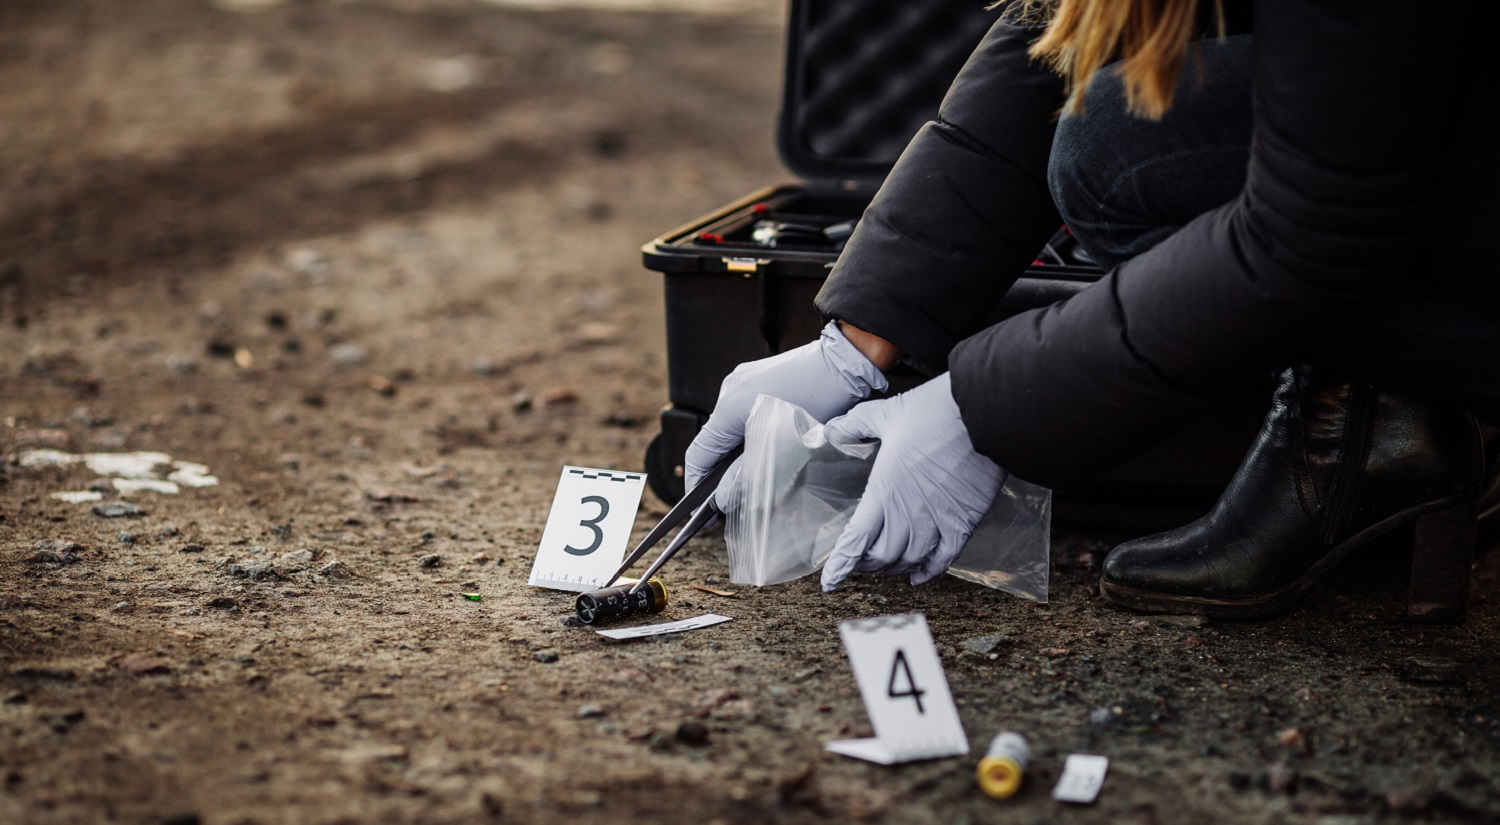 A woman collecting evidence from a crime scene